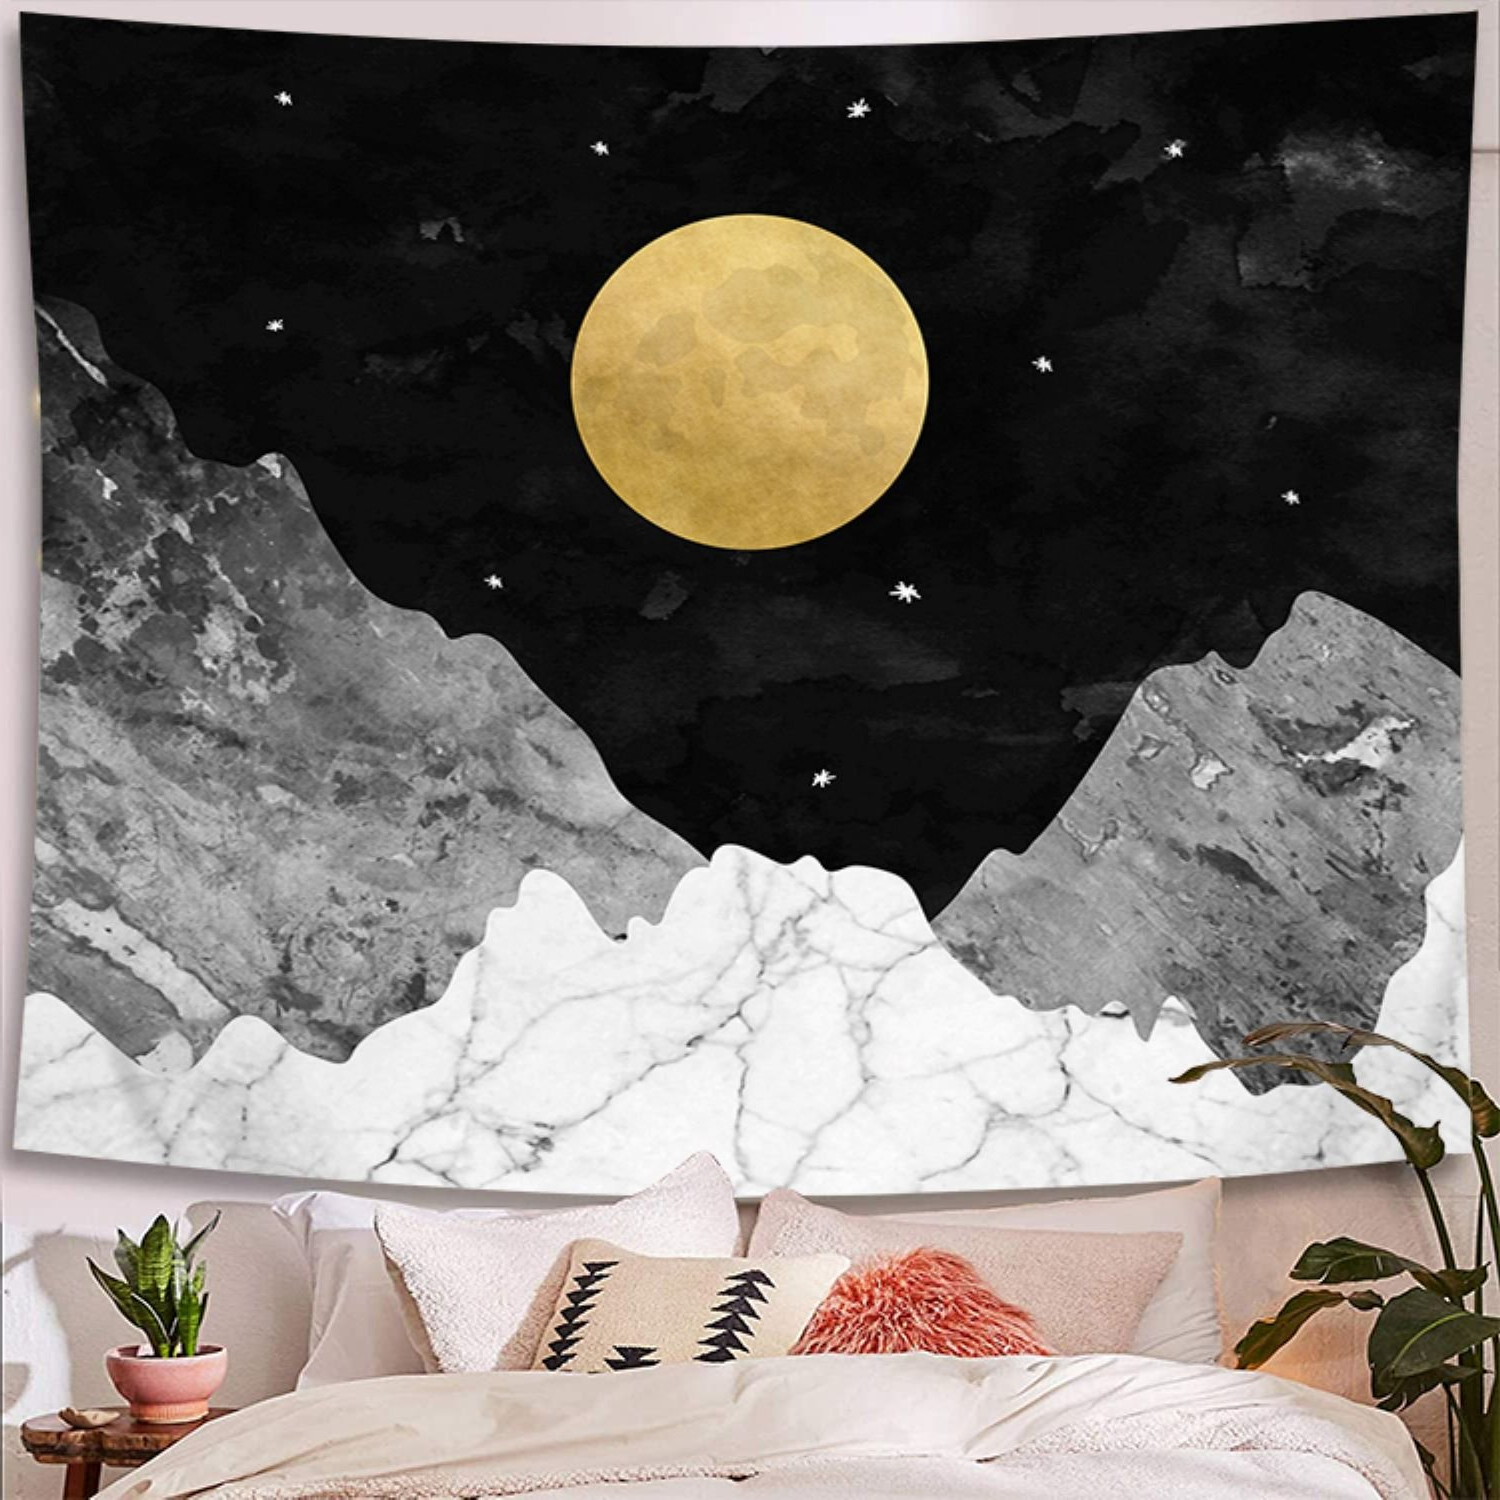 Blended Fabric Clancy Wool And Cotton Wall Hangings With Hanging Accessories Included Regarding Preferred Nightfall Moon Star And Mountain Polyester Tapestry With Hanging Accessories Included (View 18 of 20)